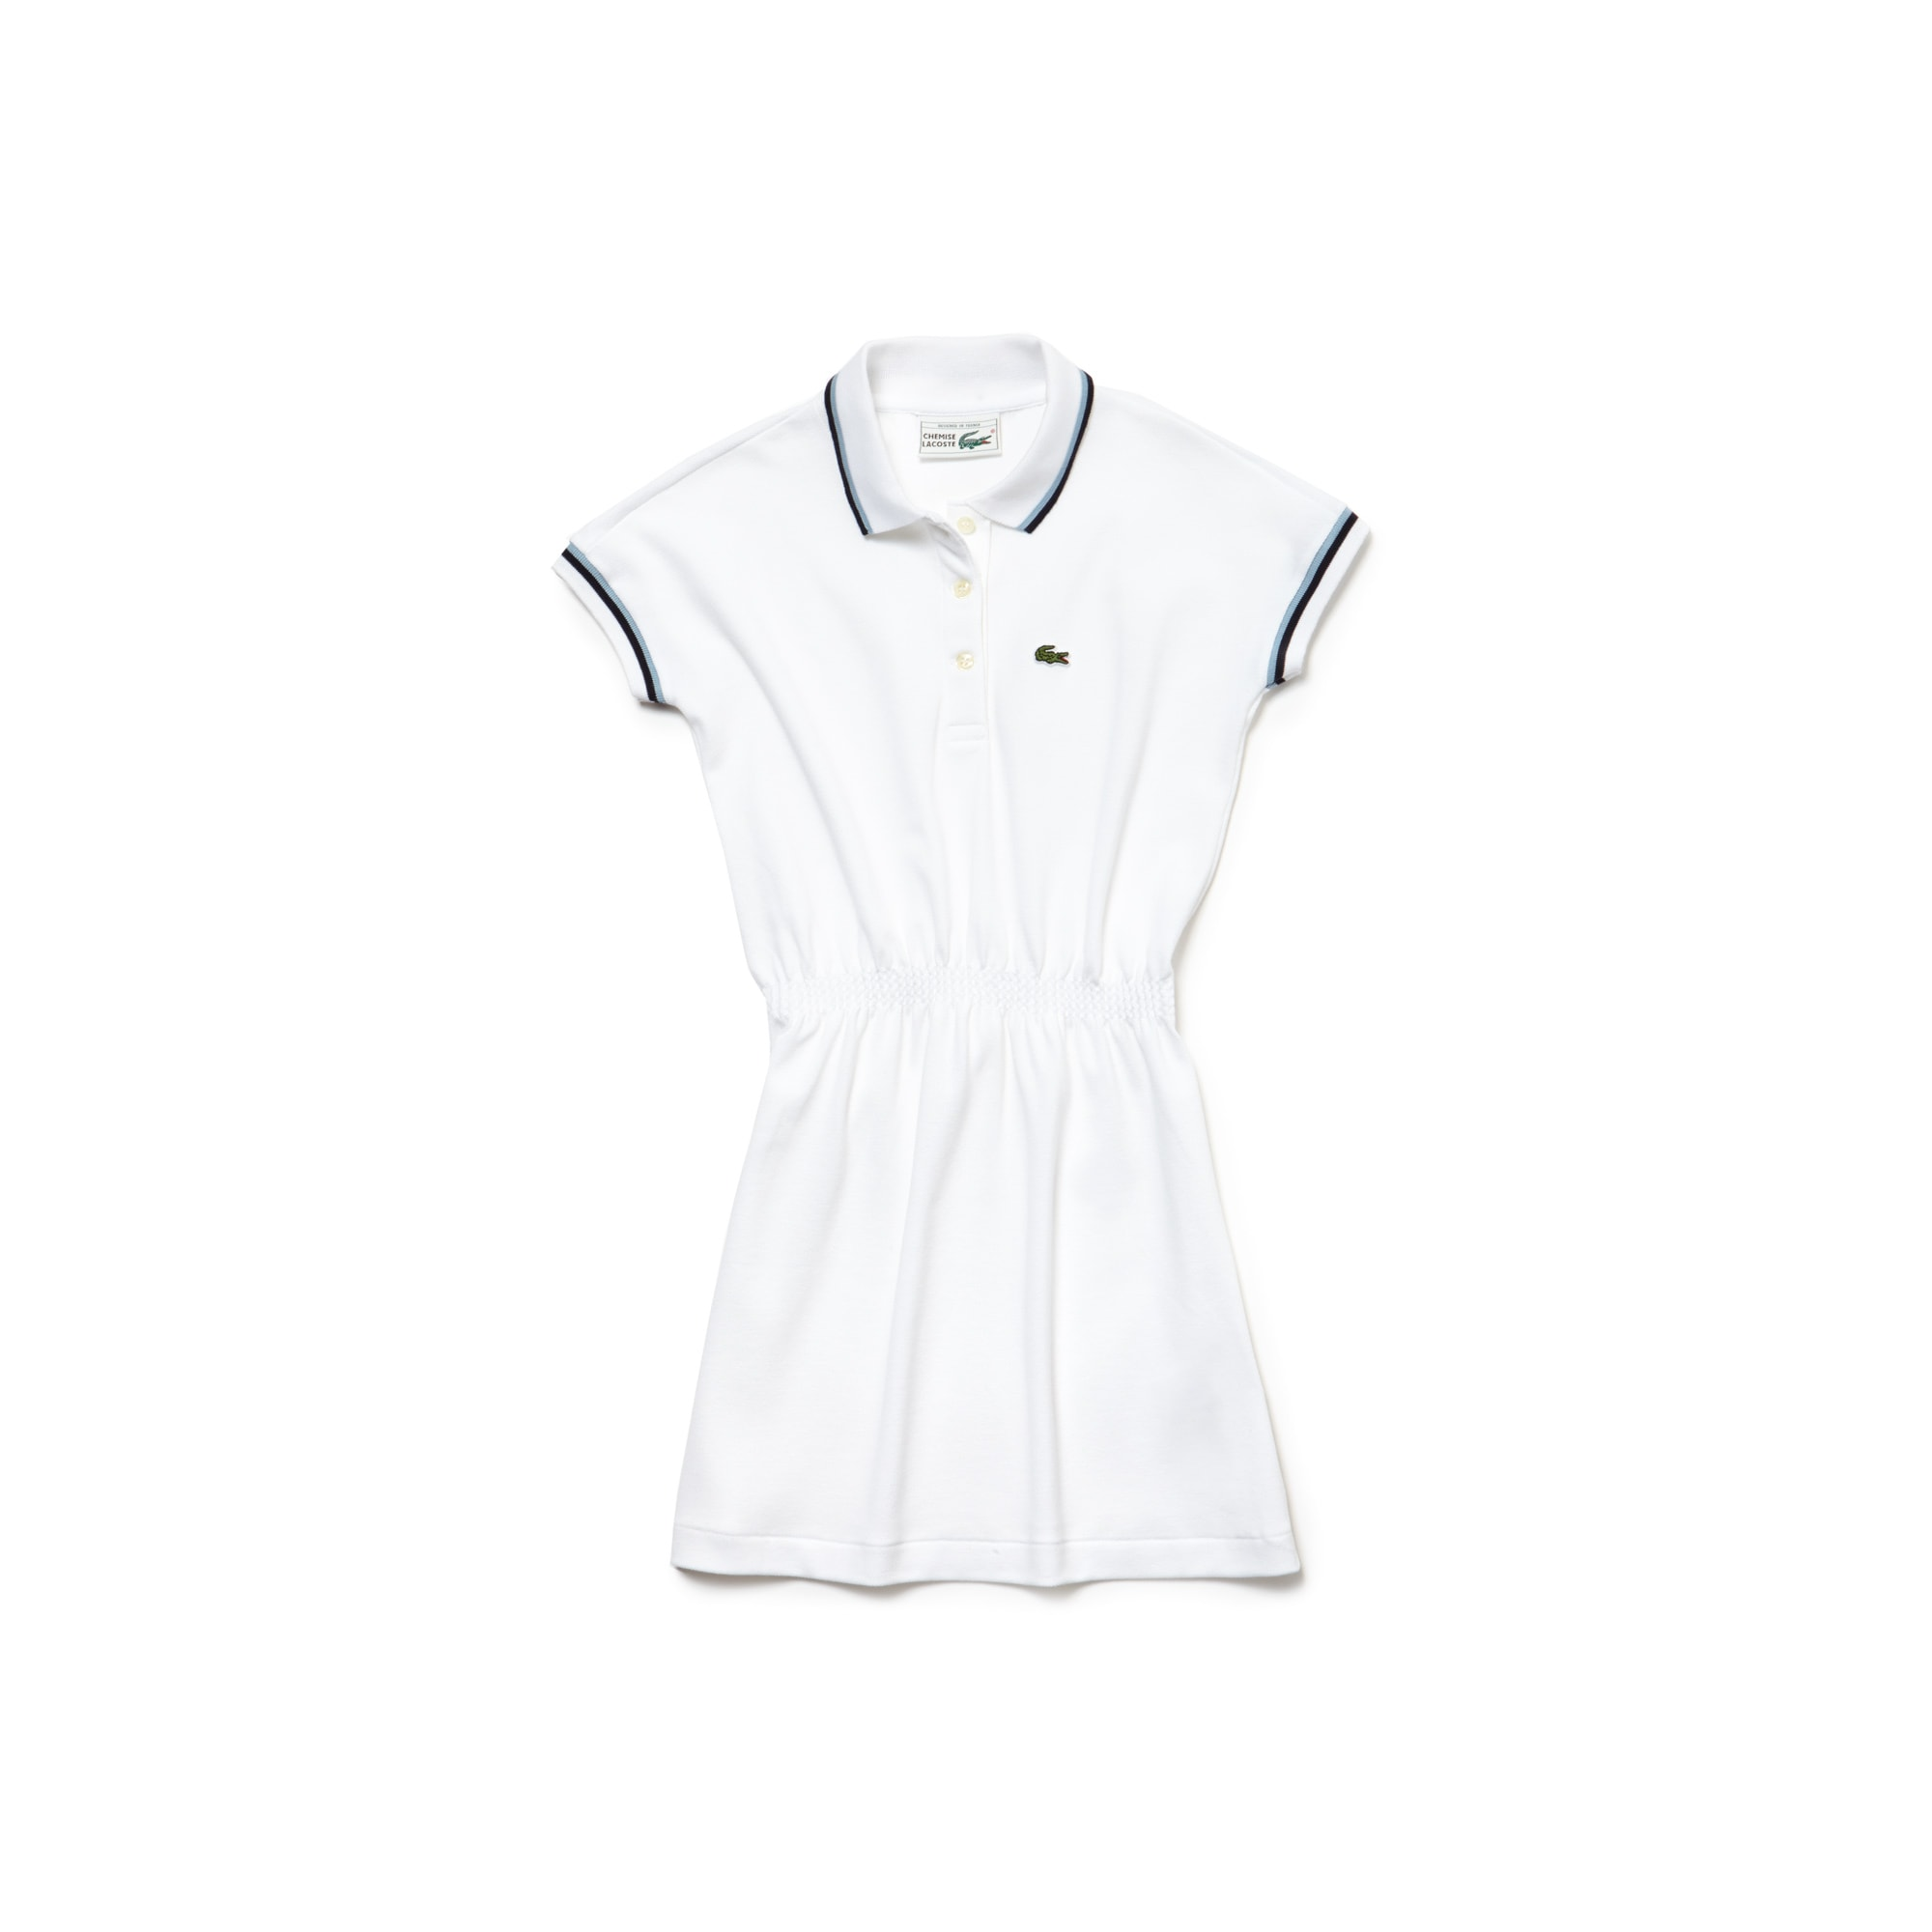 Girls' Lacoste 1980s Revival 85th Anniversary Limited Edition Piqué Polo Dress